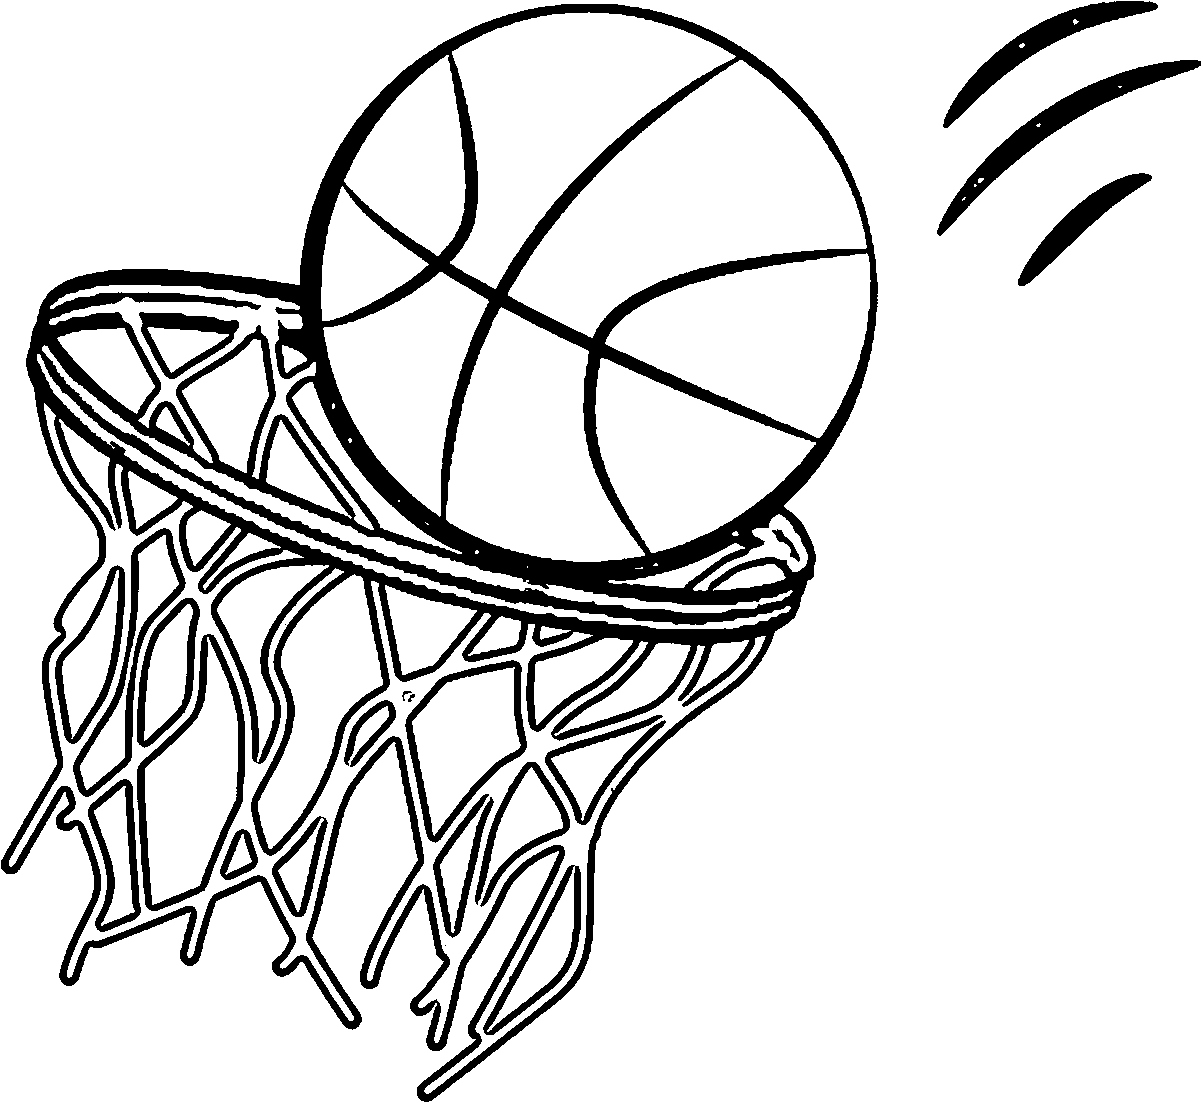 Basketball Making The Hoop Coloring Page